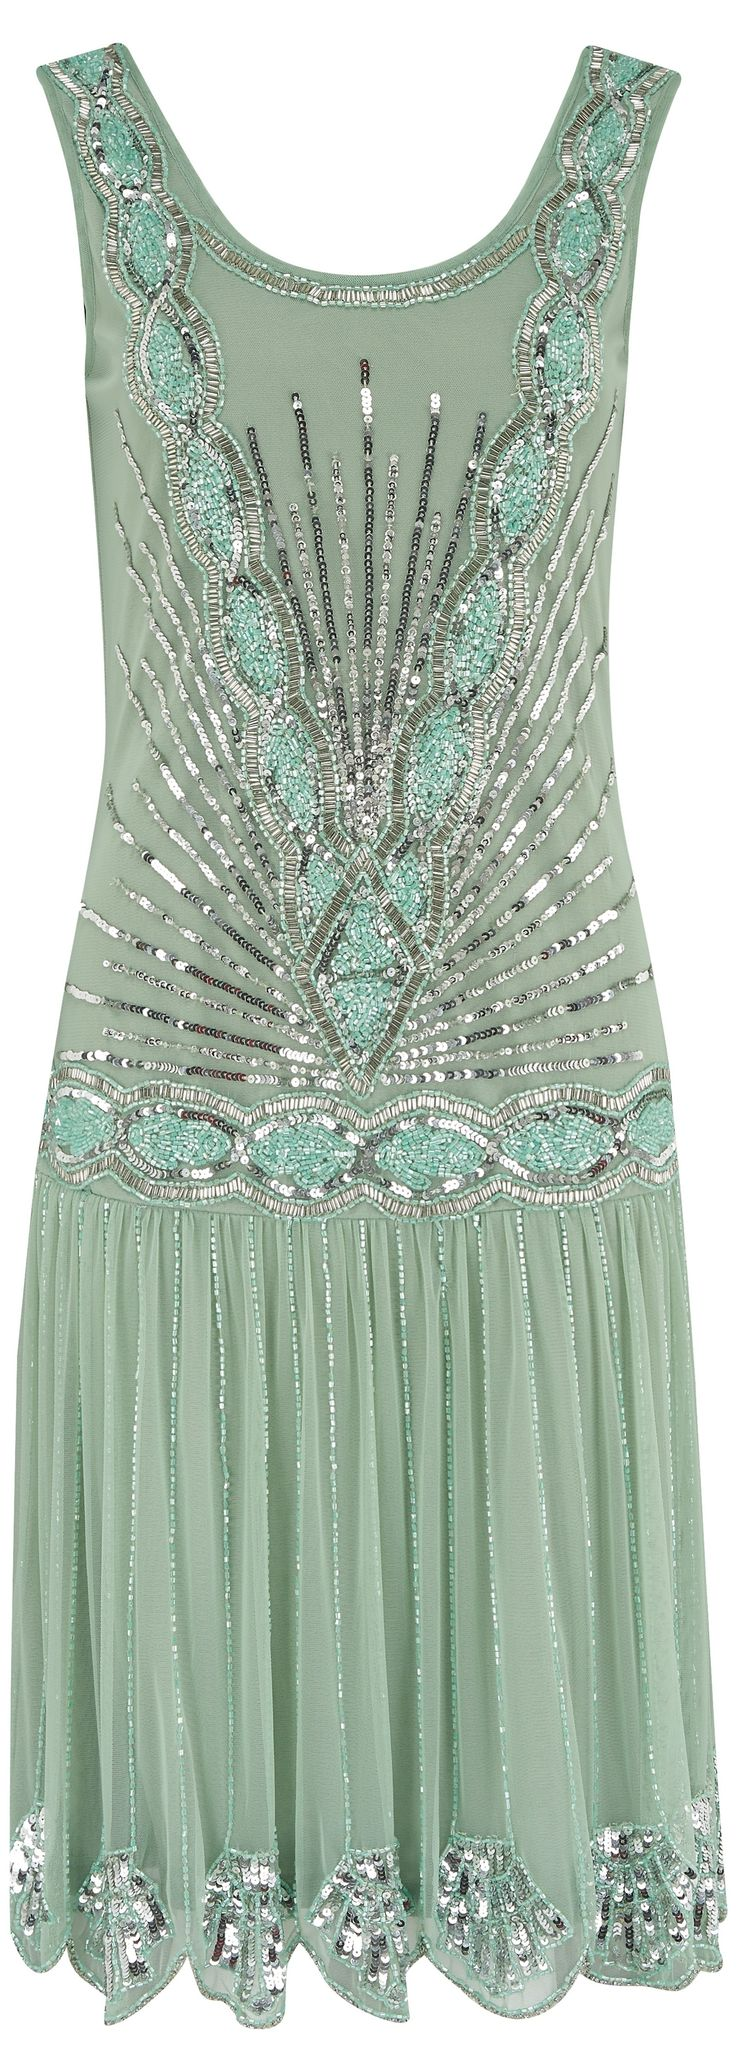 Flapper dresses and Gatsby (deco) styles are still hot due to our obsession with Downton Abbey. Wear your drop-waist dresses with pride. Drink champagne and kick ass. Read updated article with pics from 2015: http://www.boomerinas.com/2013/06/26/flapper-fashion-trend-for-parties-cruises-weddings/